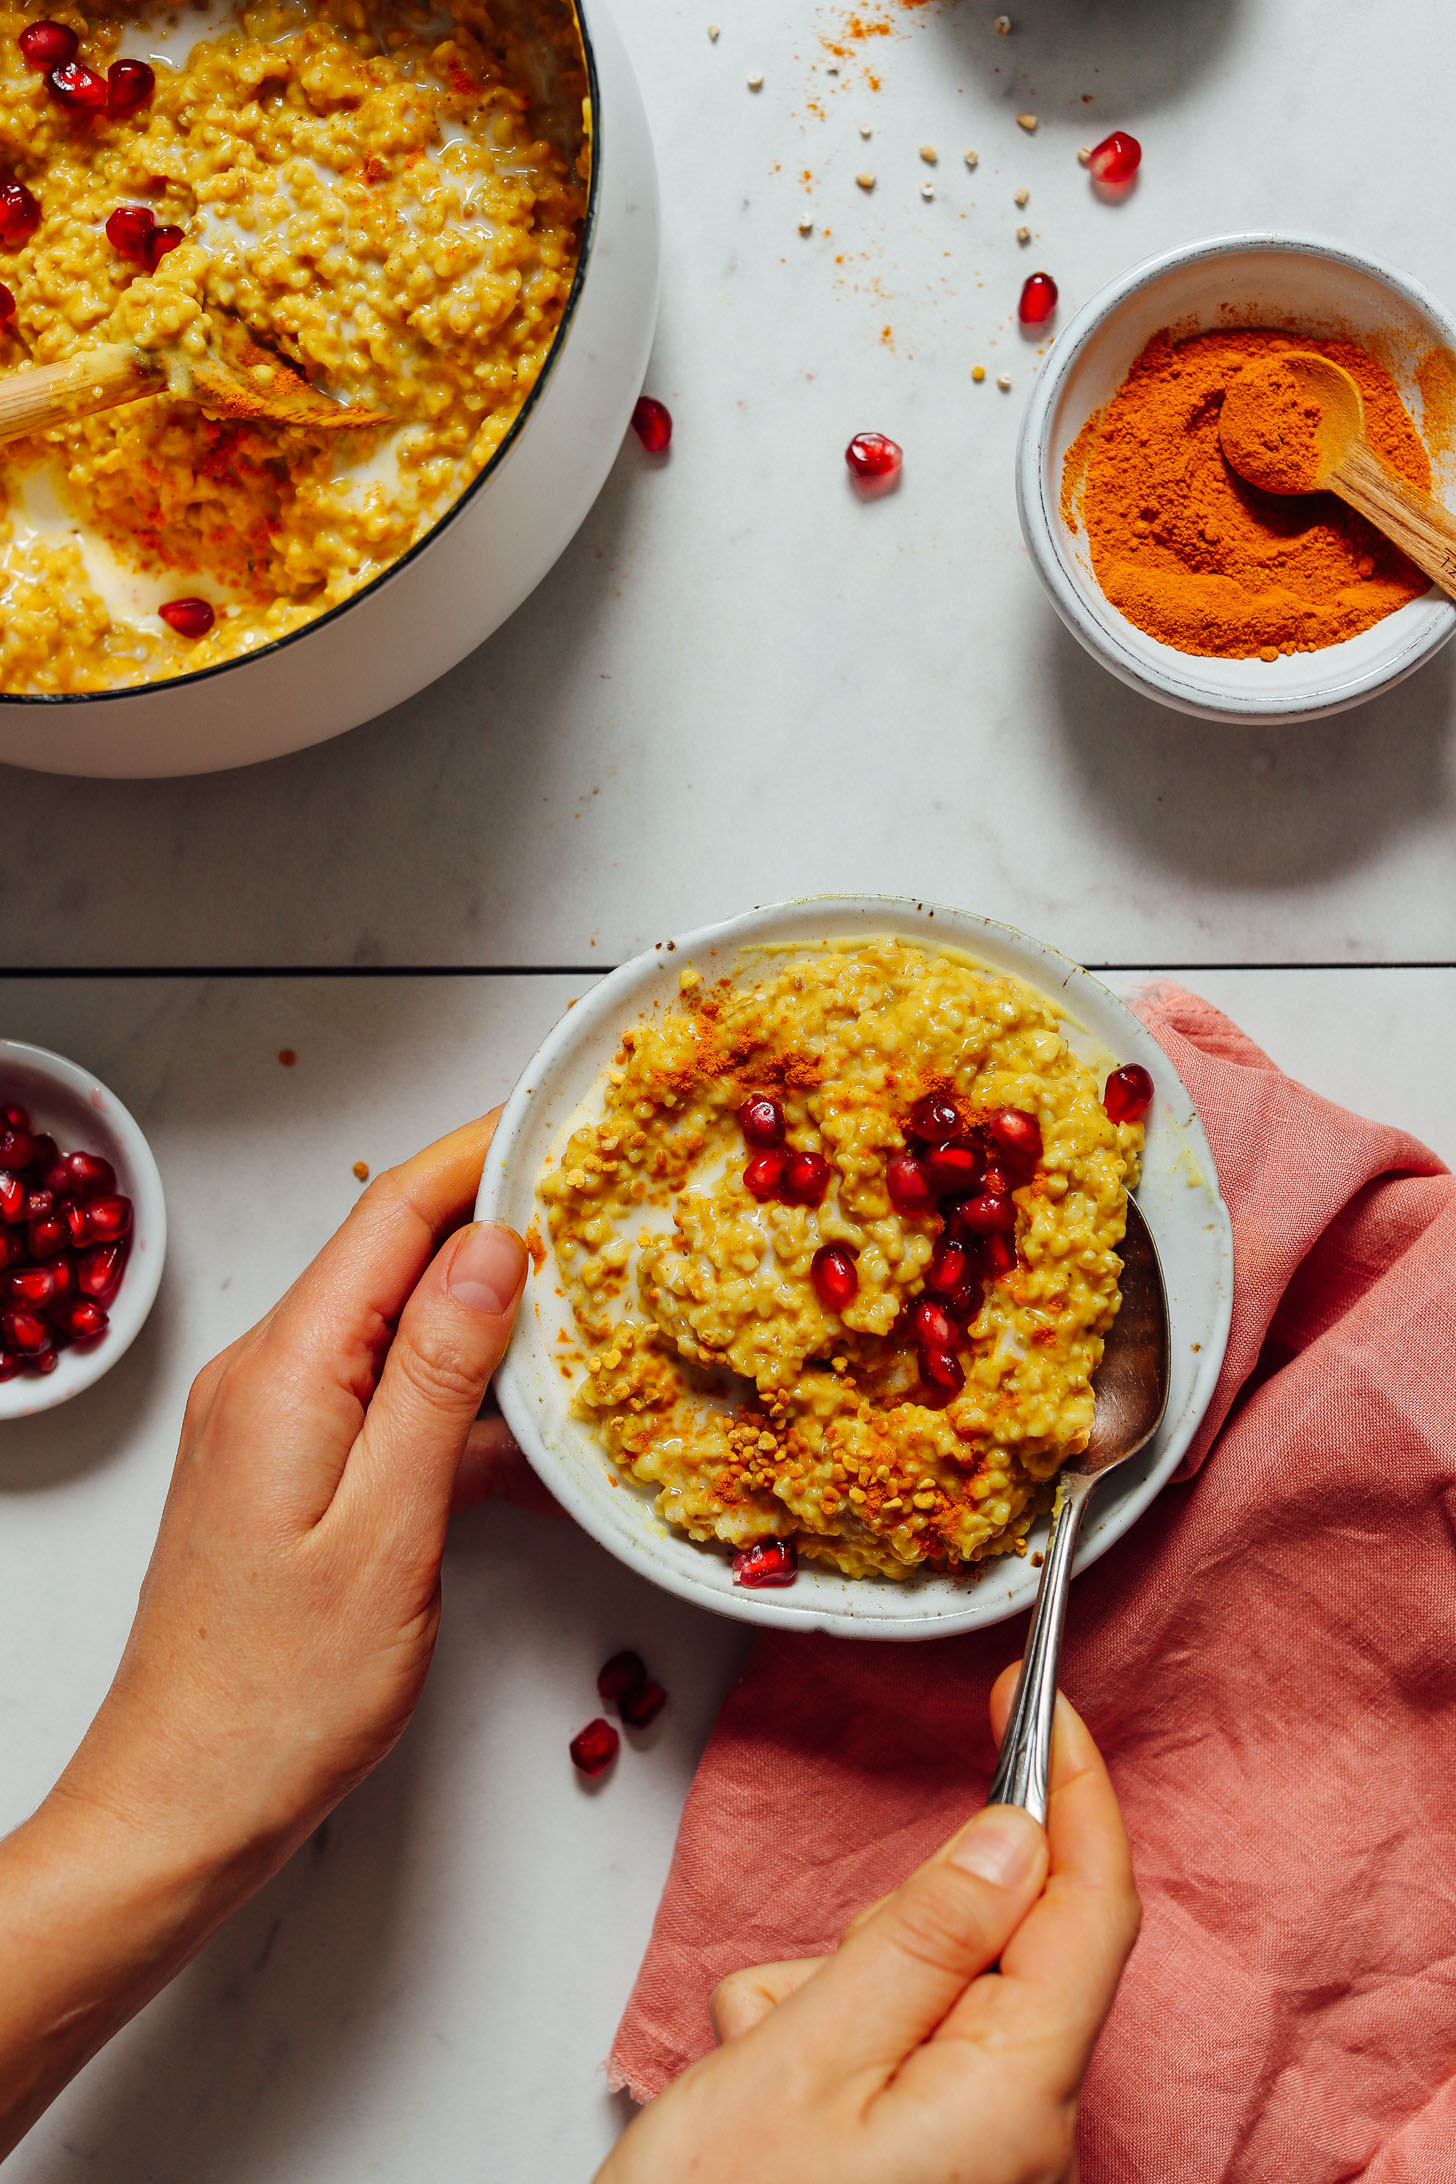 Spoon in a bowl of Cozy Turmeric Porridge topped with pomegranate arrils